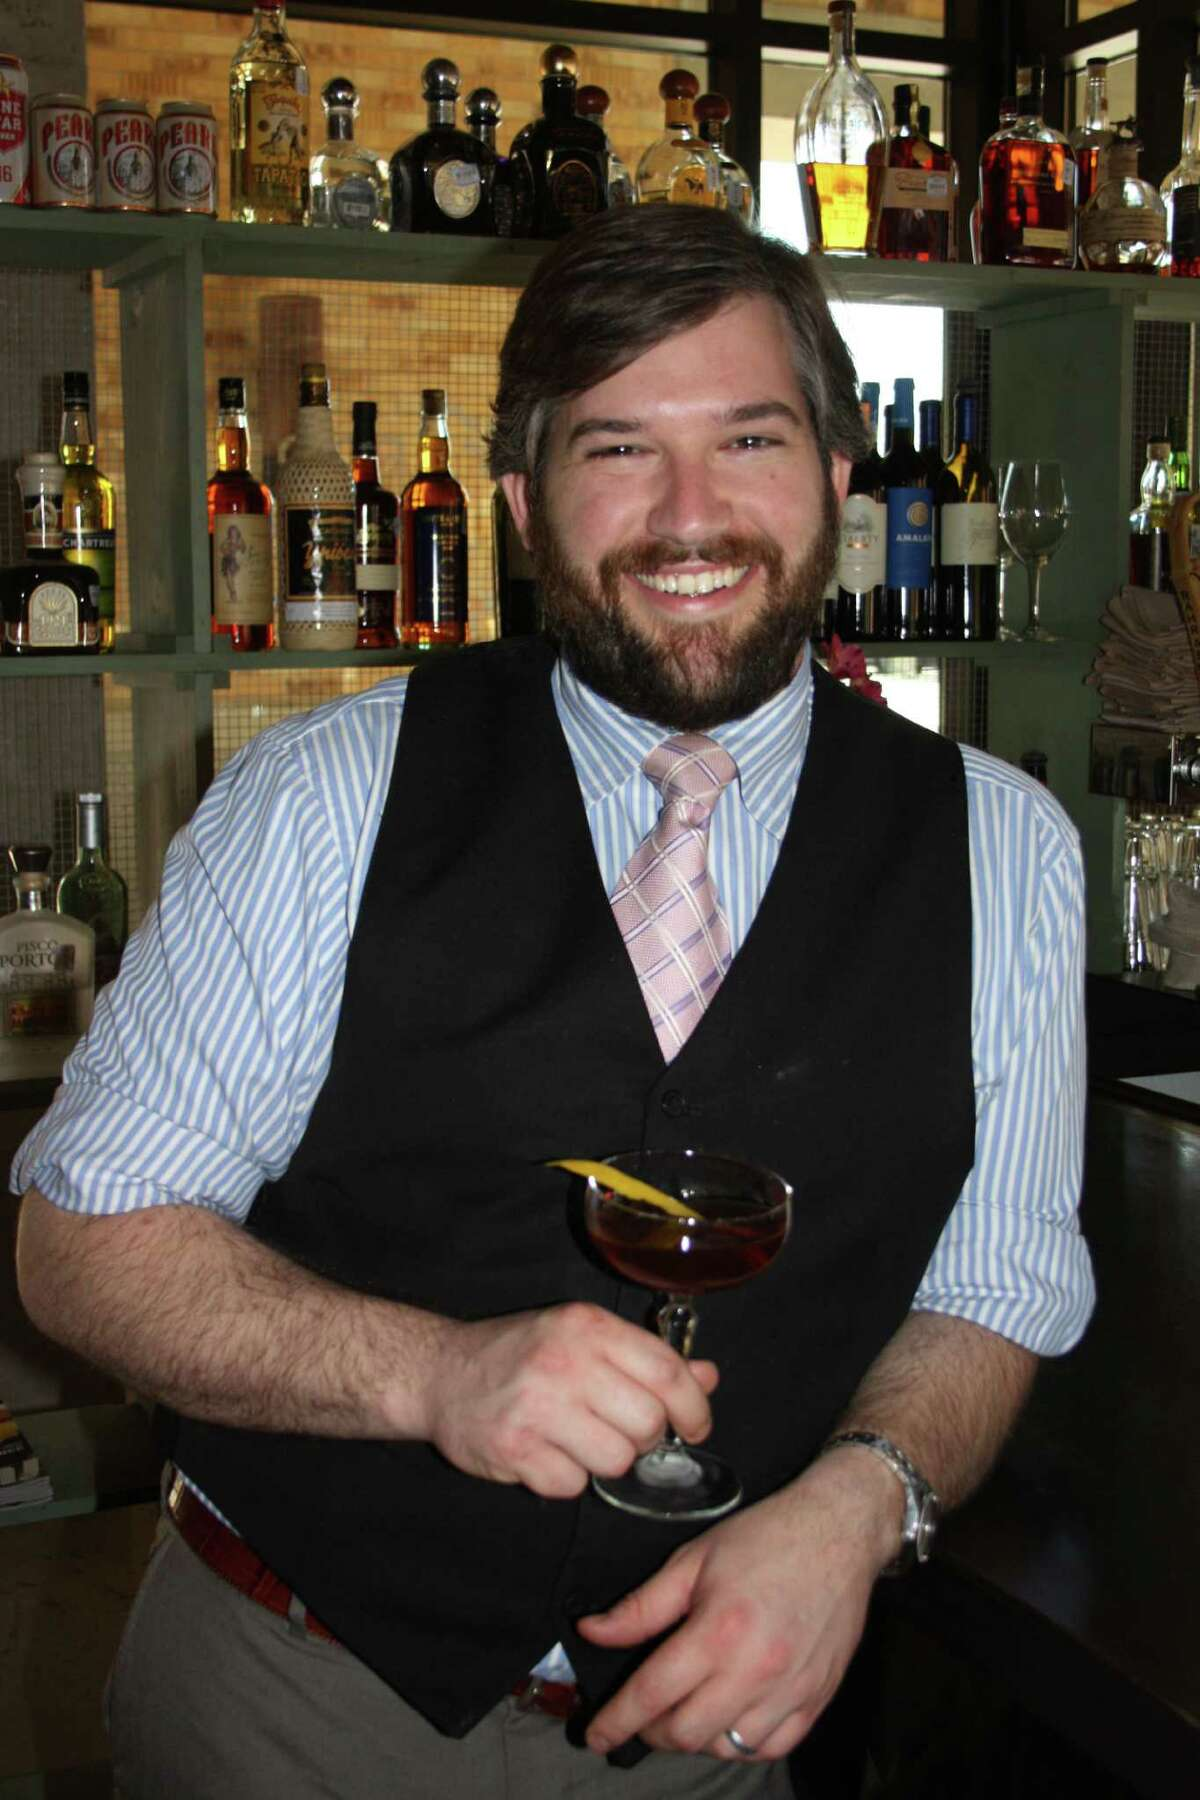 Chris Ware is the bar manager at Arcade Midtown Kitchen. Read more